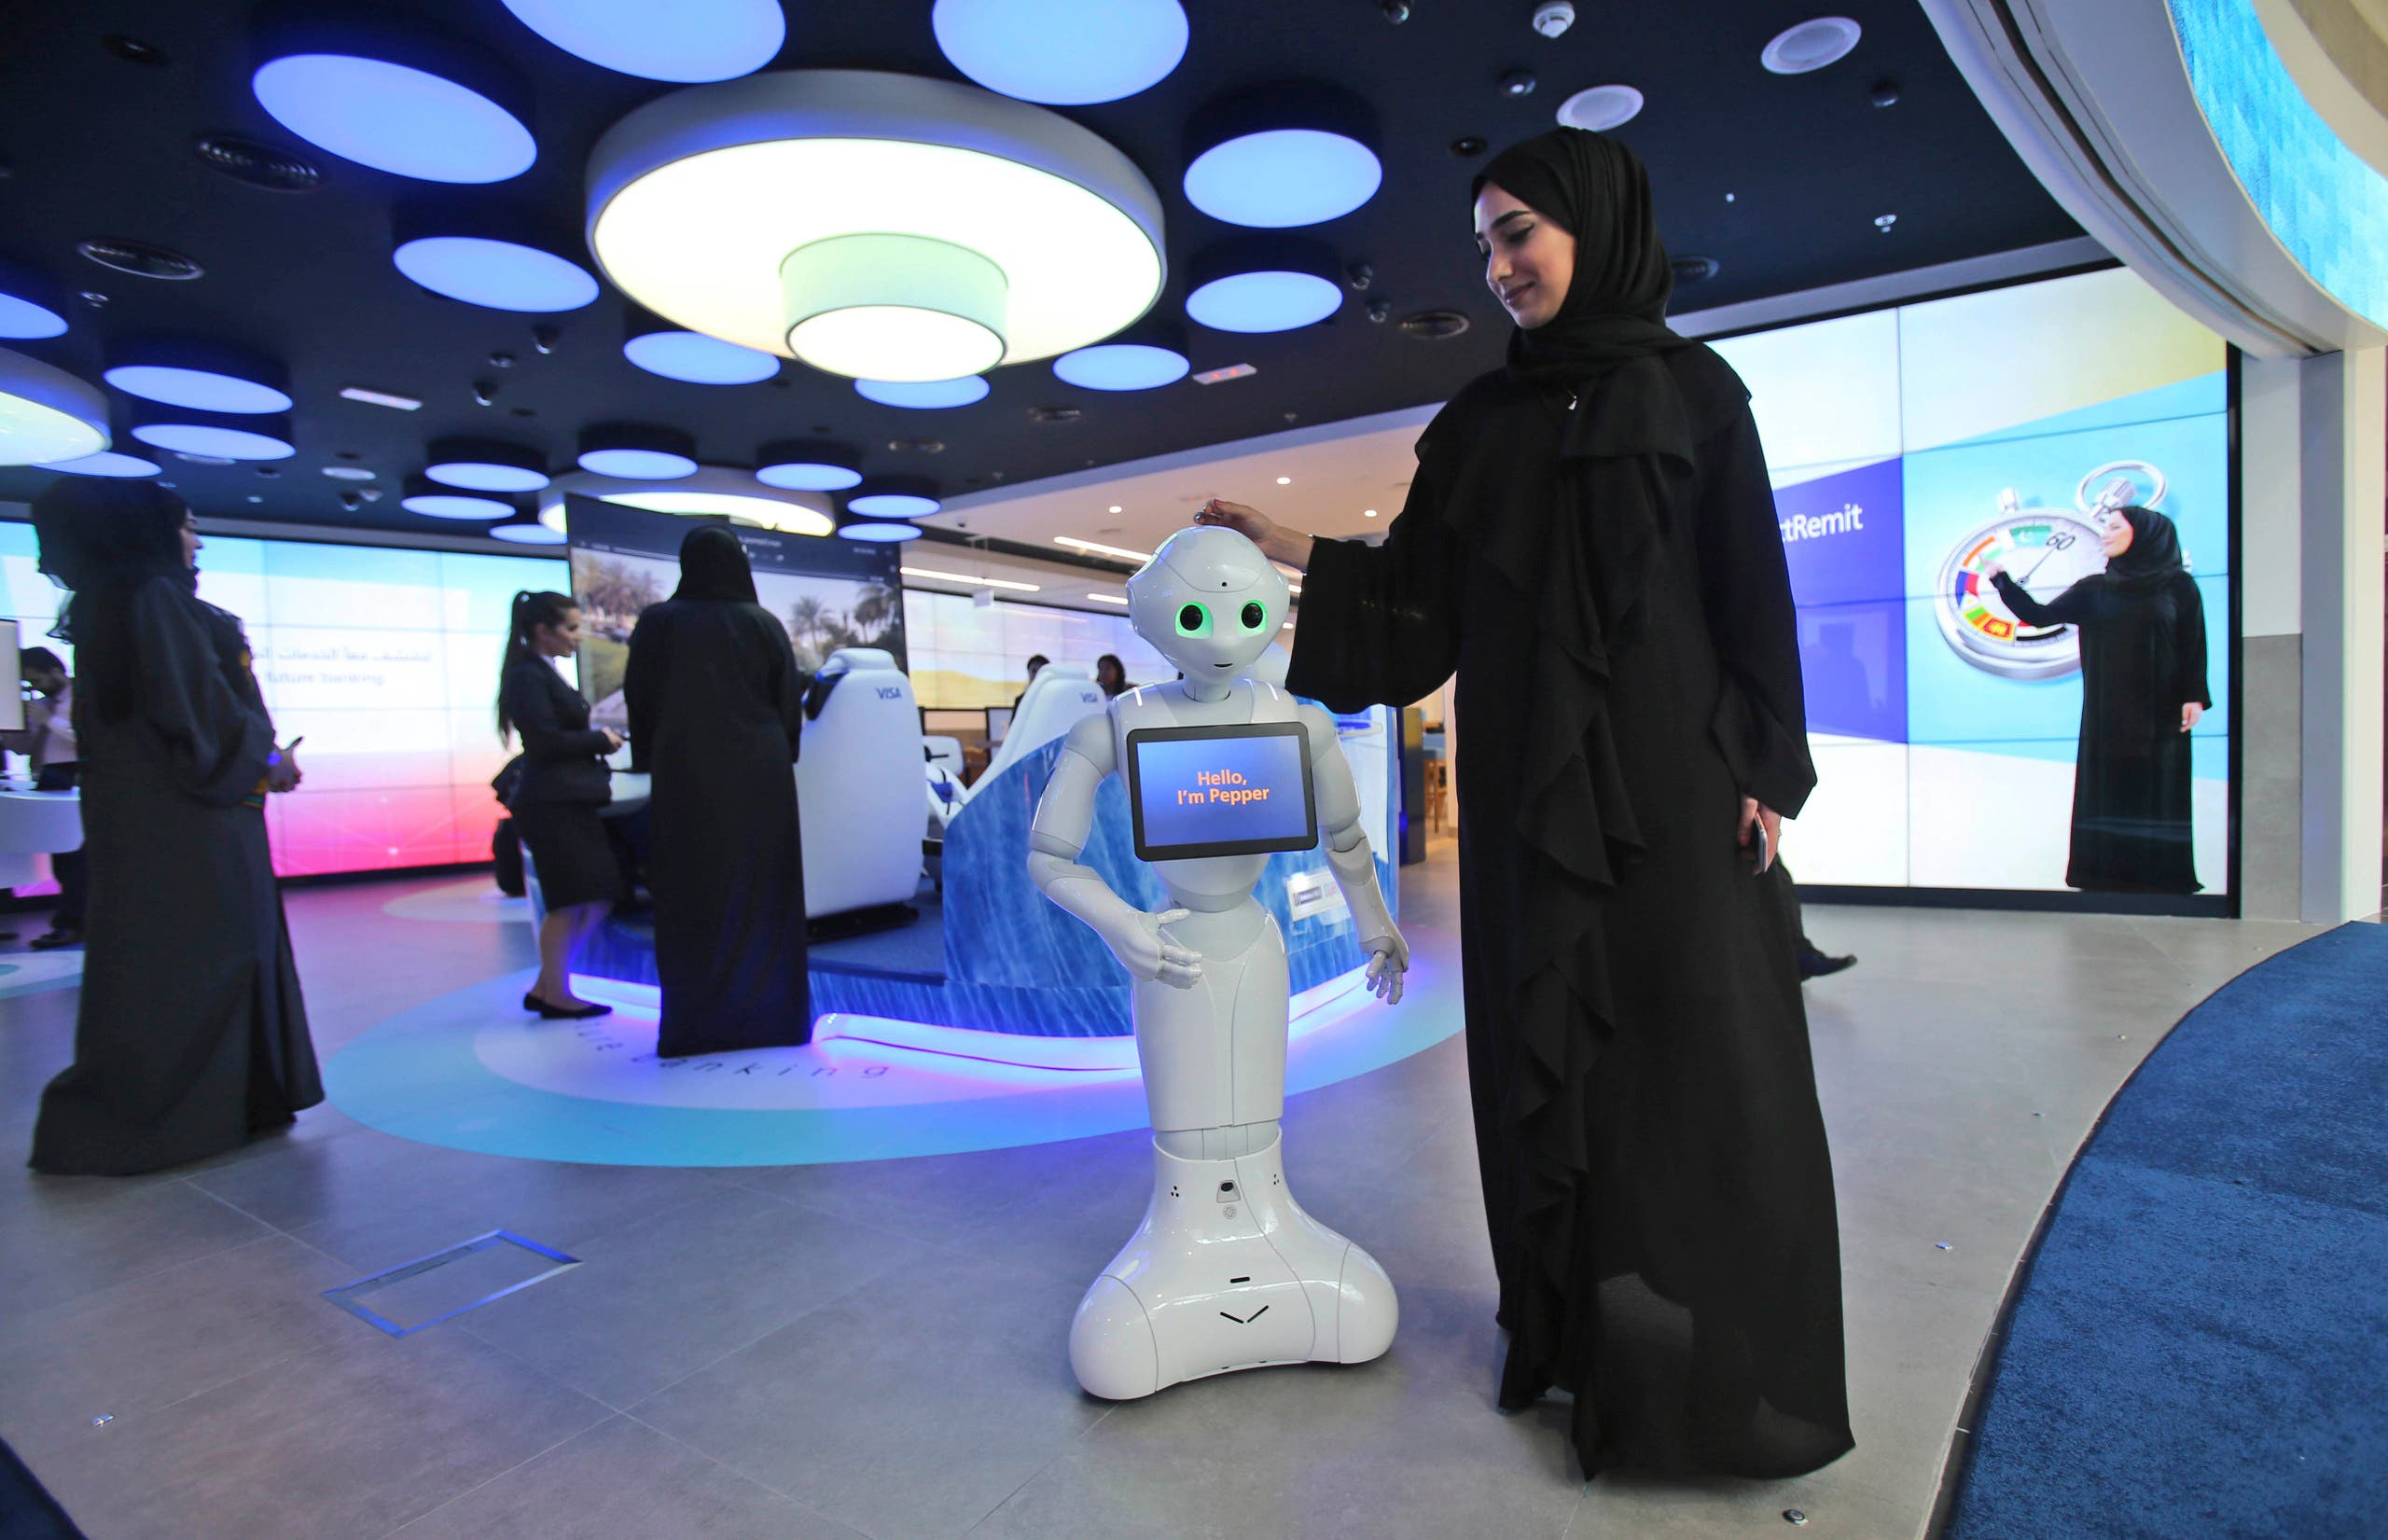 An Emirati woman presents Pepper, a robot, at a bank, as a part of the Dubai Future Accelerators in Dubai, UAE, on Oct. 4, 2016. (AP)